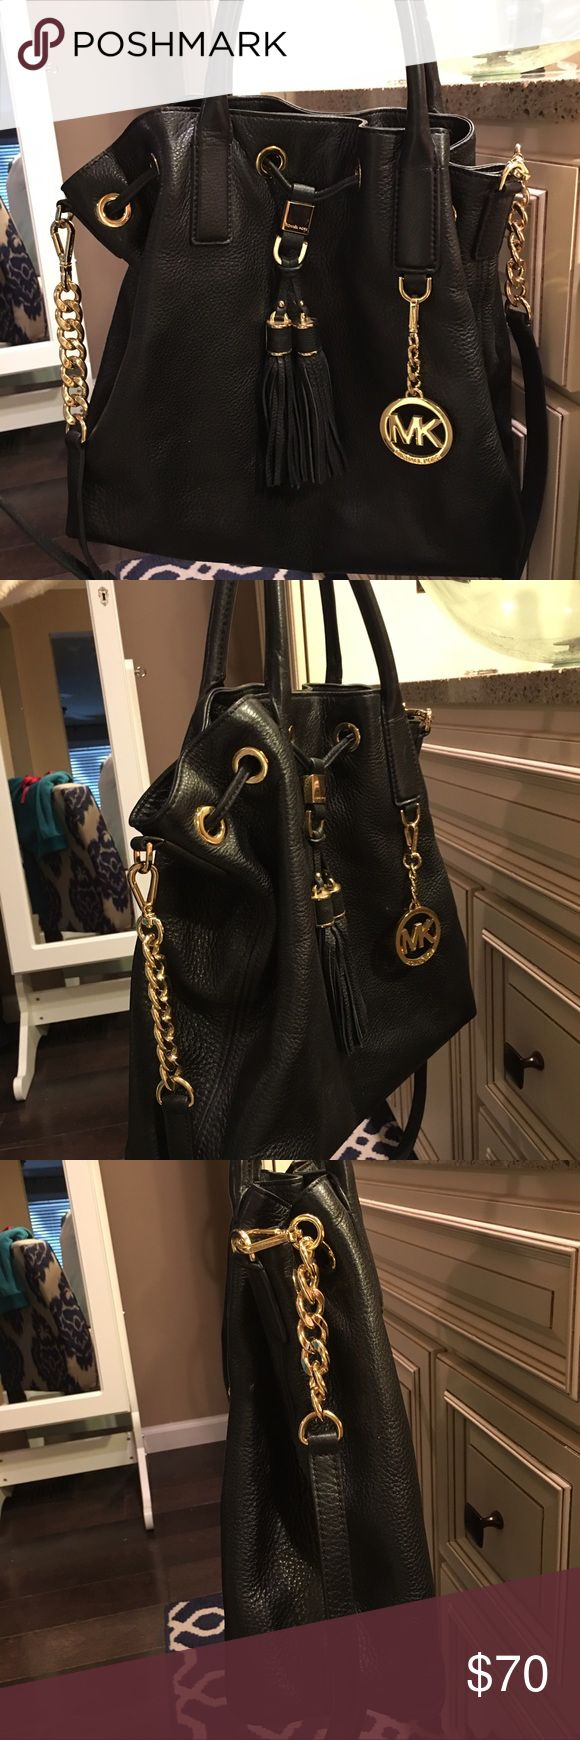 Michael Kors purse Beautiful MK black purse! Used 2x. Perfect condition. I never carry it so up for trade or to pass along! OBO KORS Michael Kors Bags Satchels